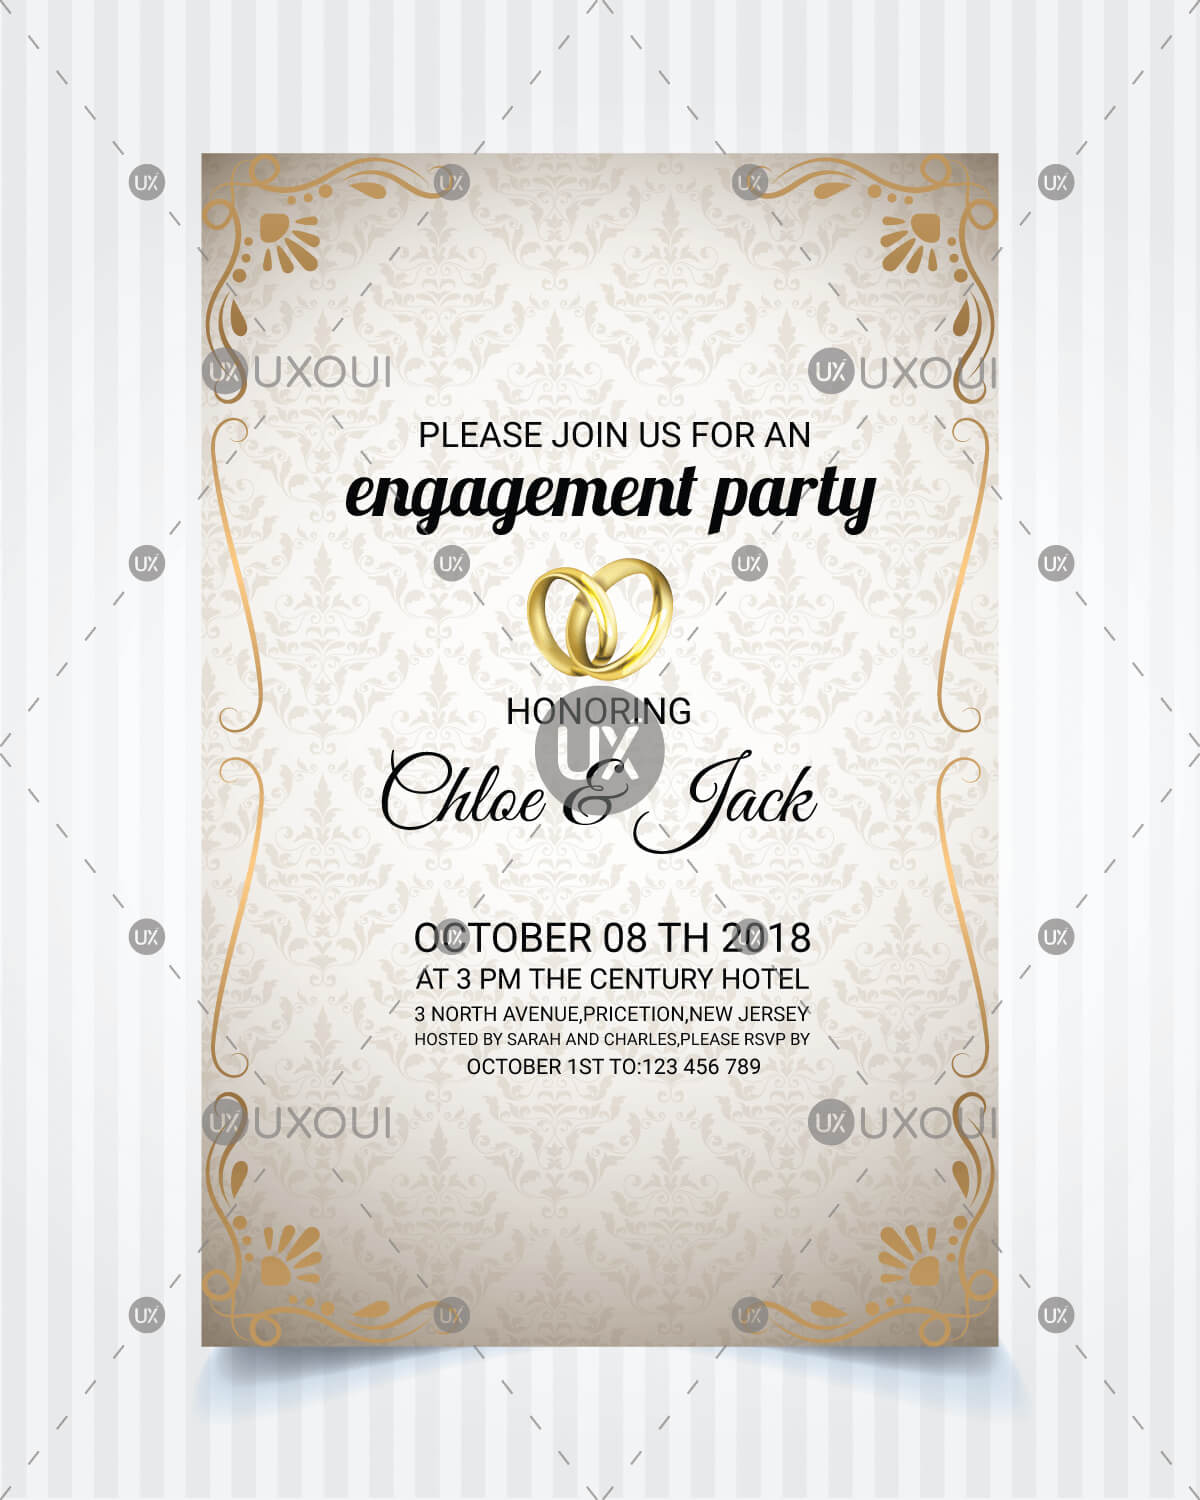 Vintage Style Wedding Engagement Party Invitation Card Template Design  Vector Regarding Engagement Invitation Card Template